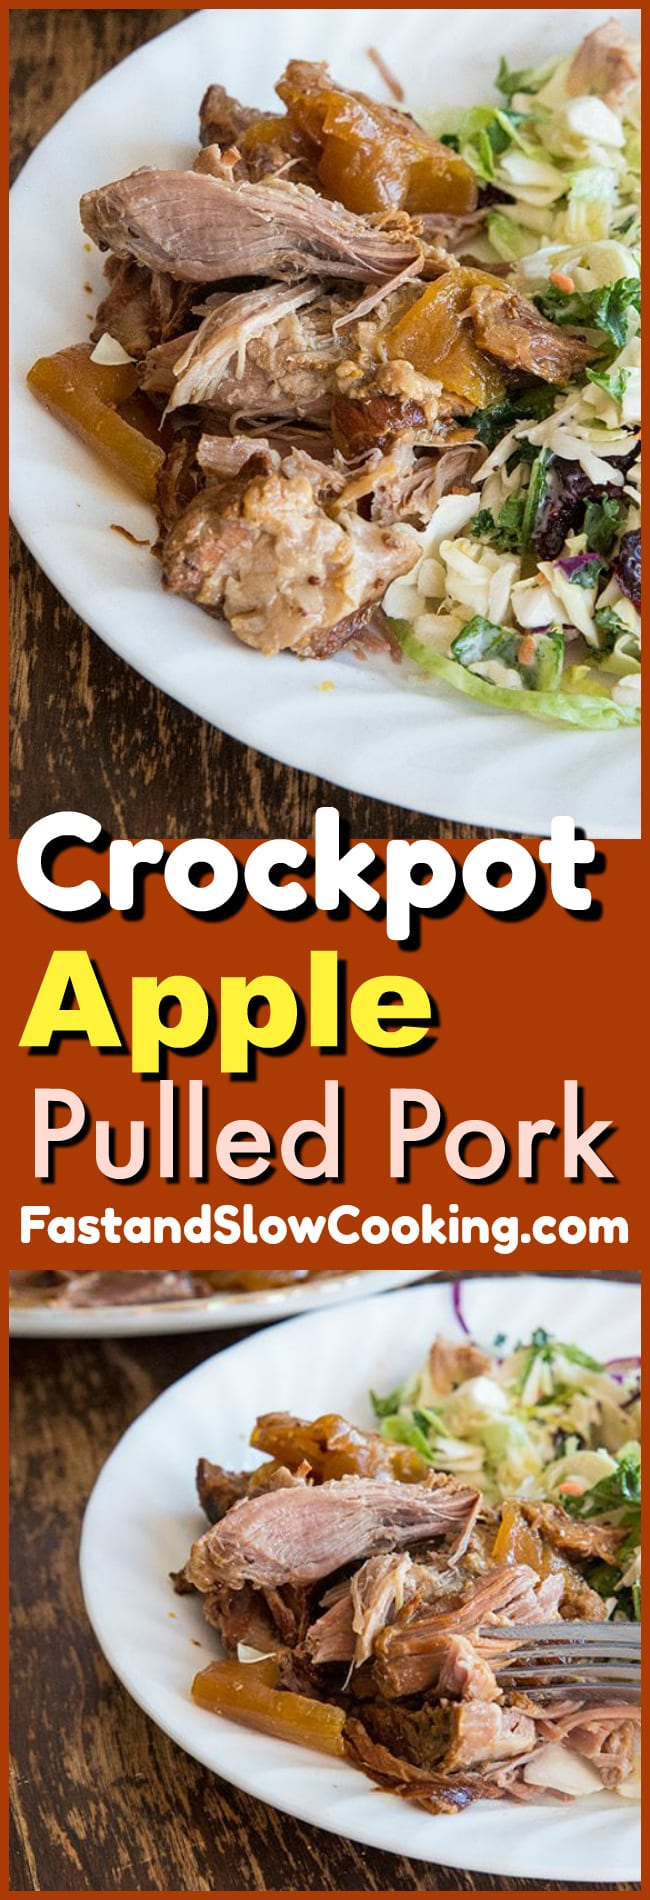 This Crockpot Apple Pulled Pork is a surprisingly delicious slow cooker meal! If you love applesauce with pork you are going to love this recipe!  #crockpot #slowcooker #pork #pulledpork #apples #recipe